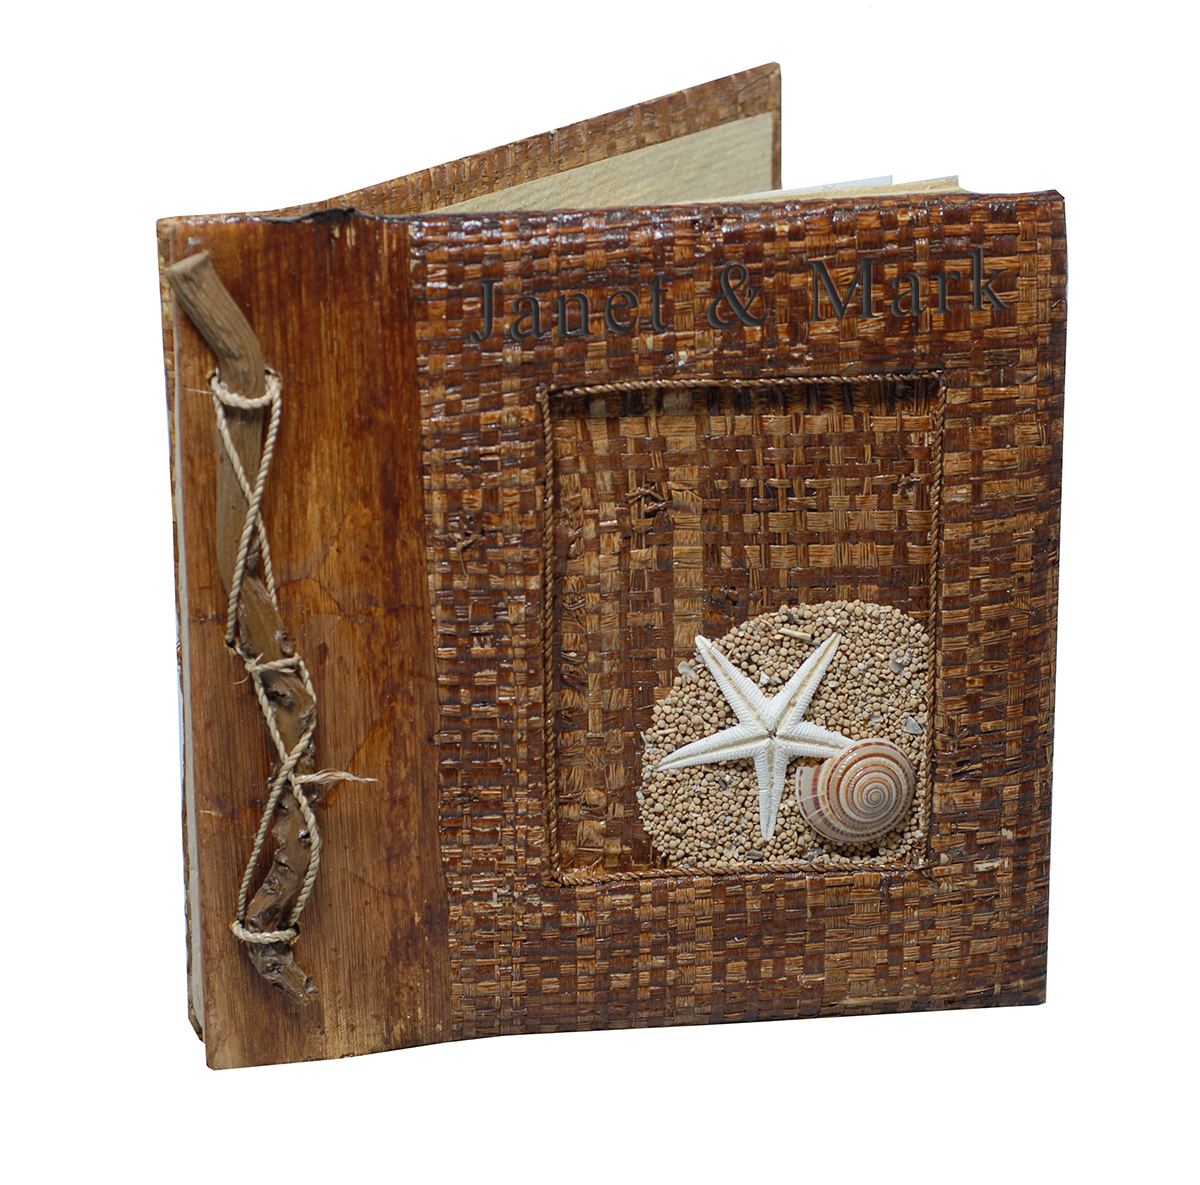 Handcrafted Natural Weaved Beach Starfish Photo Album